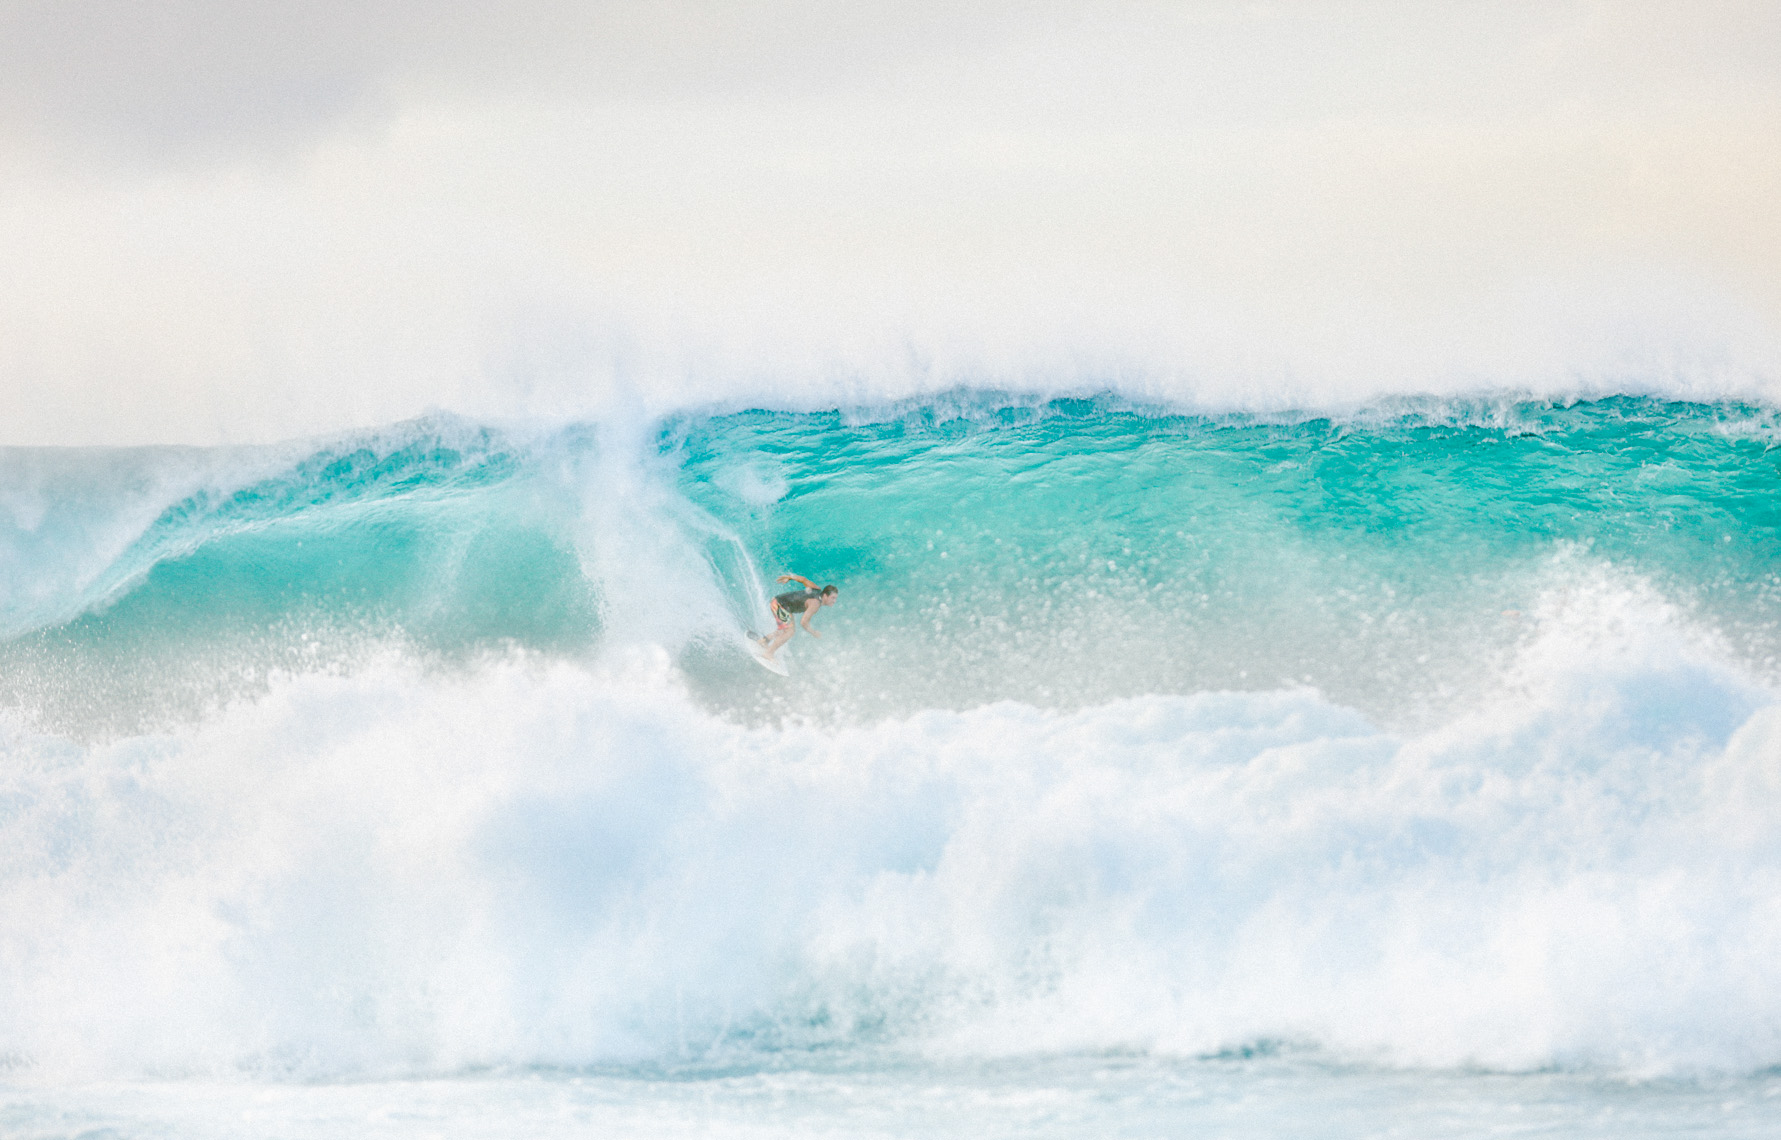 Adventure and outdoor lifestyle photogaph by Forest Woodward Surfer at Pipeline North Shore Oahu